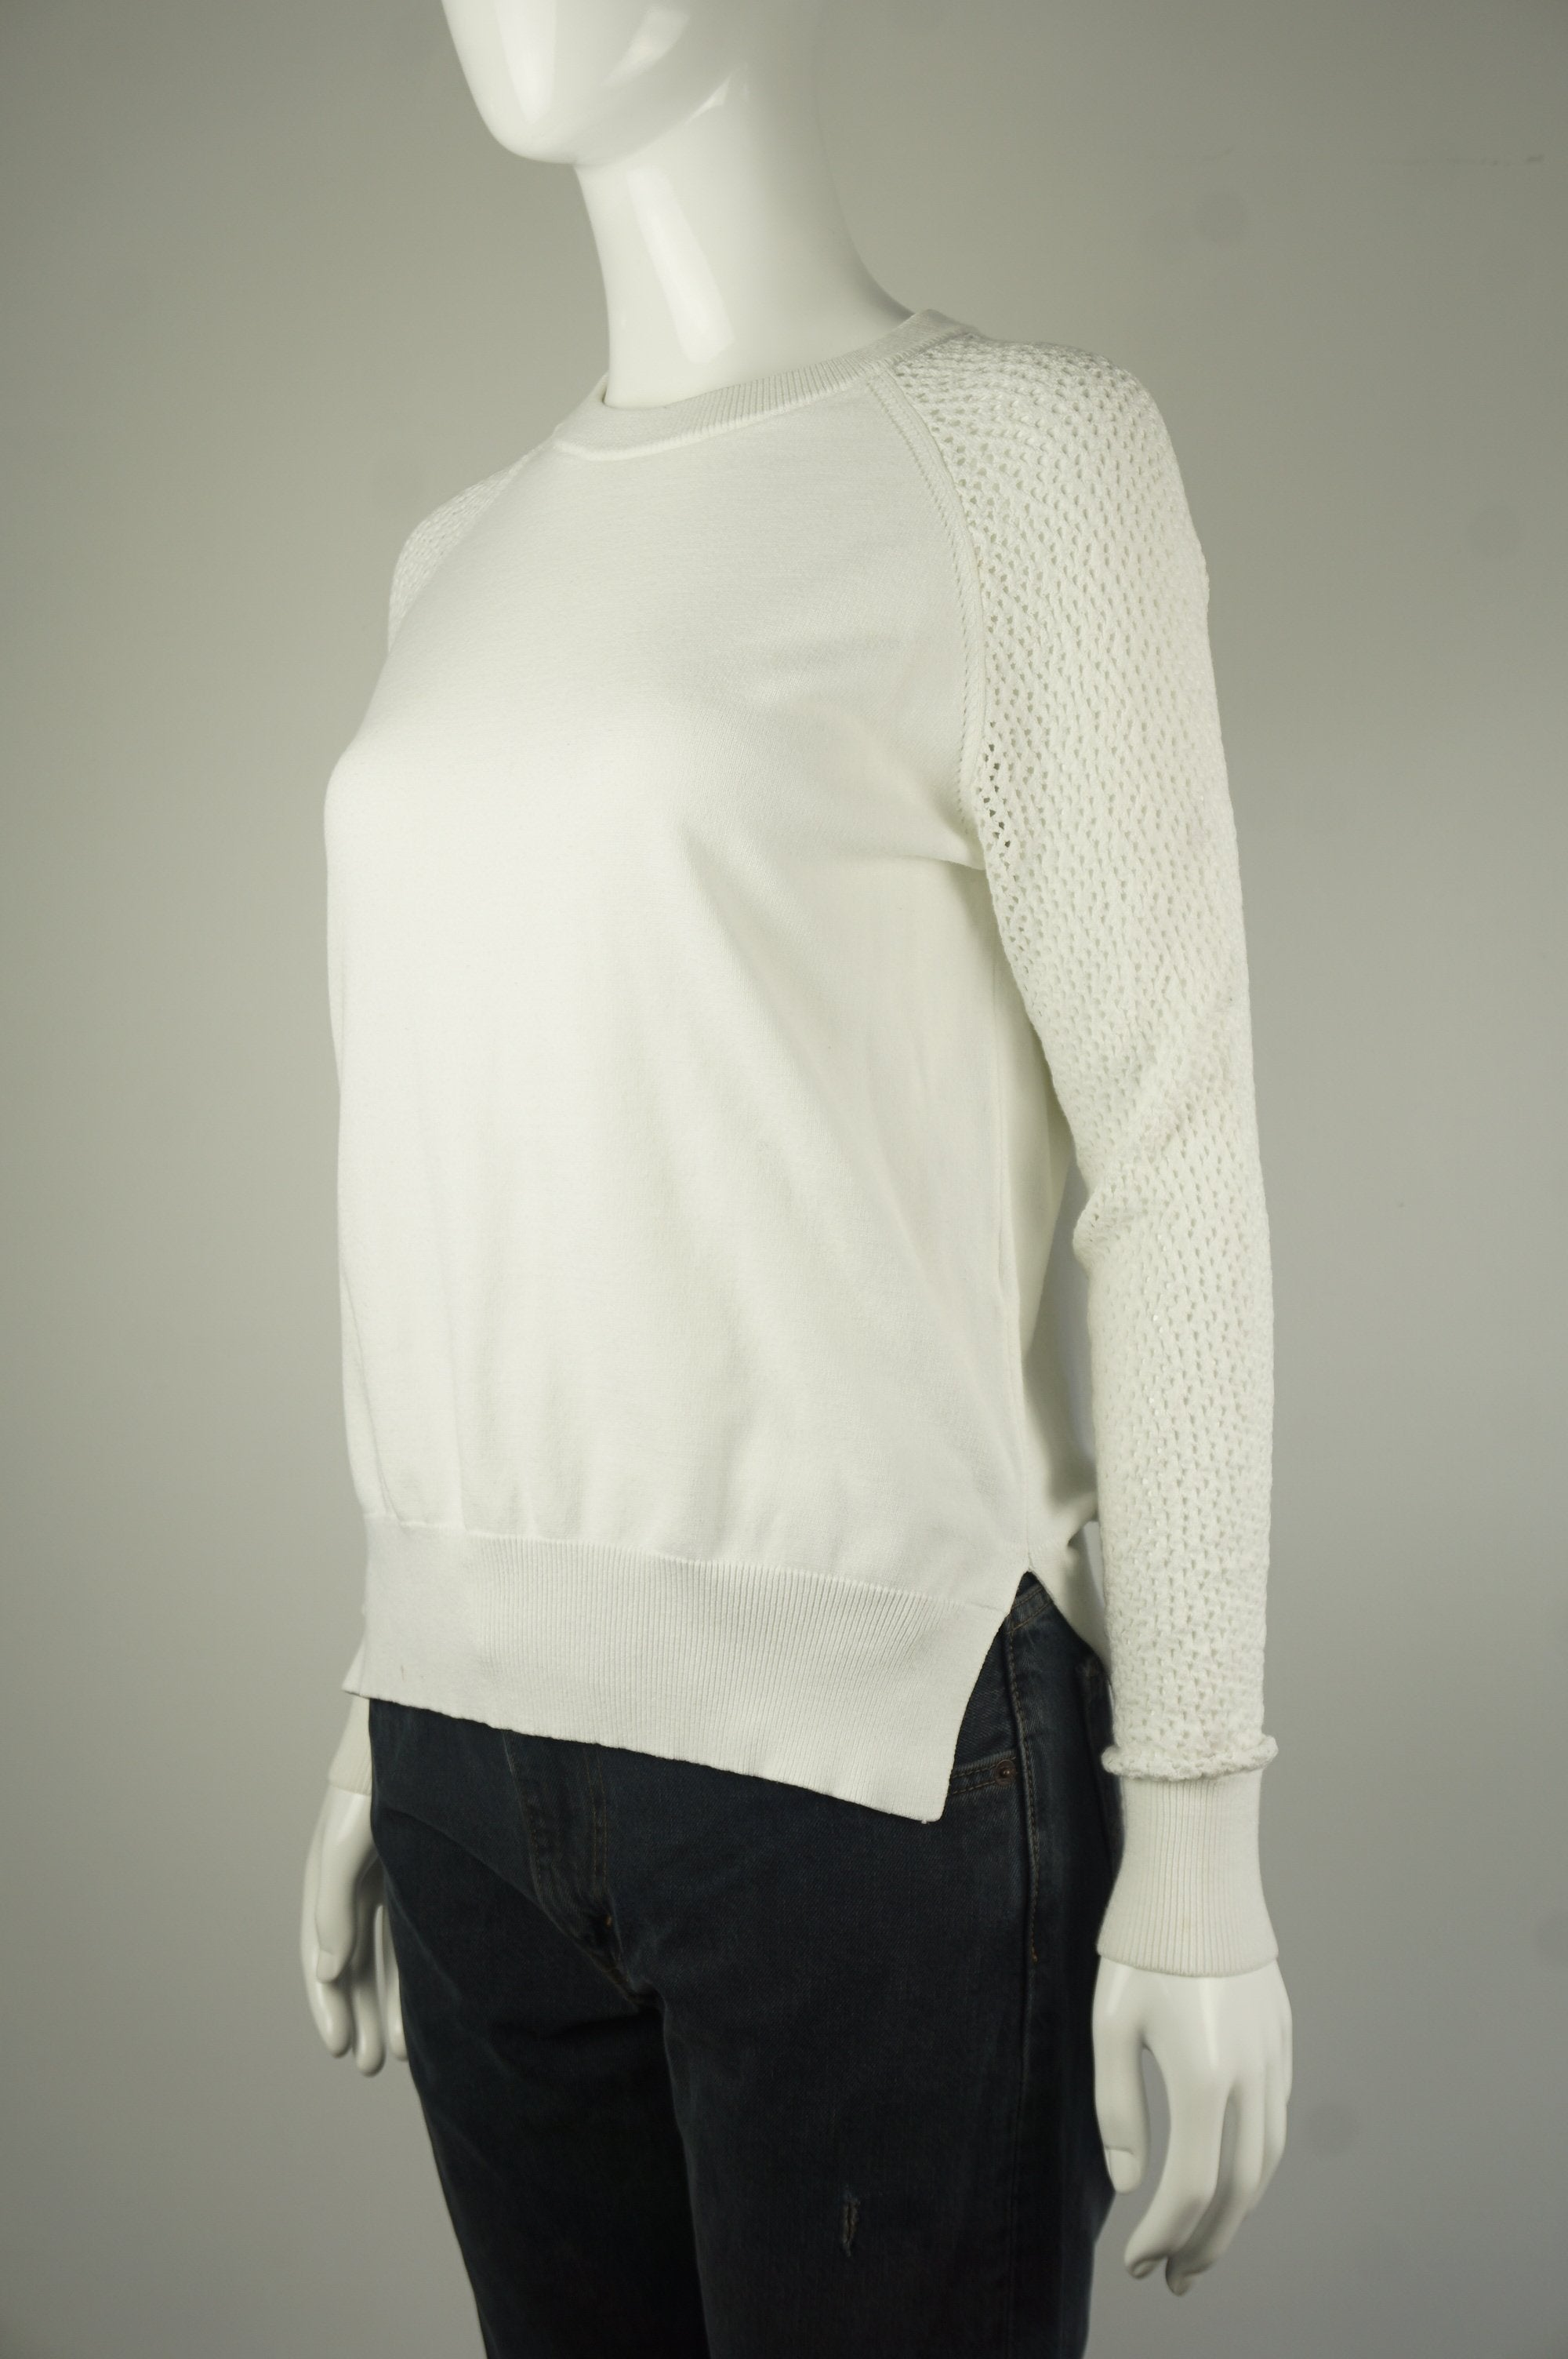 Wilfred White Sweater, Elegant yet casual sweater, White, , women's white sweater, women's white sweater with lace sleeves